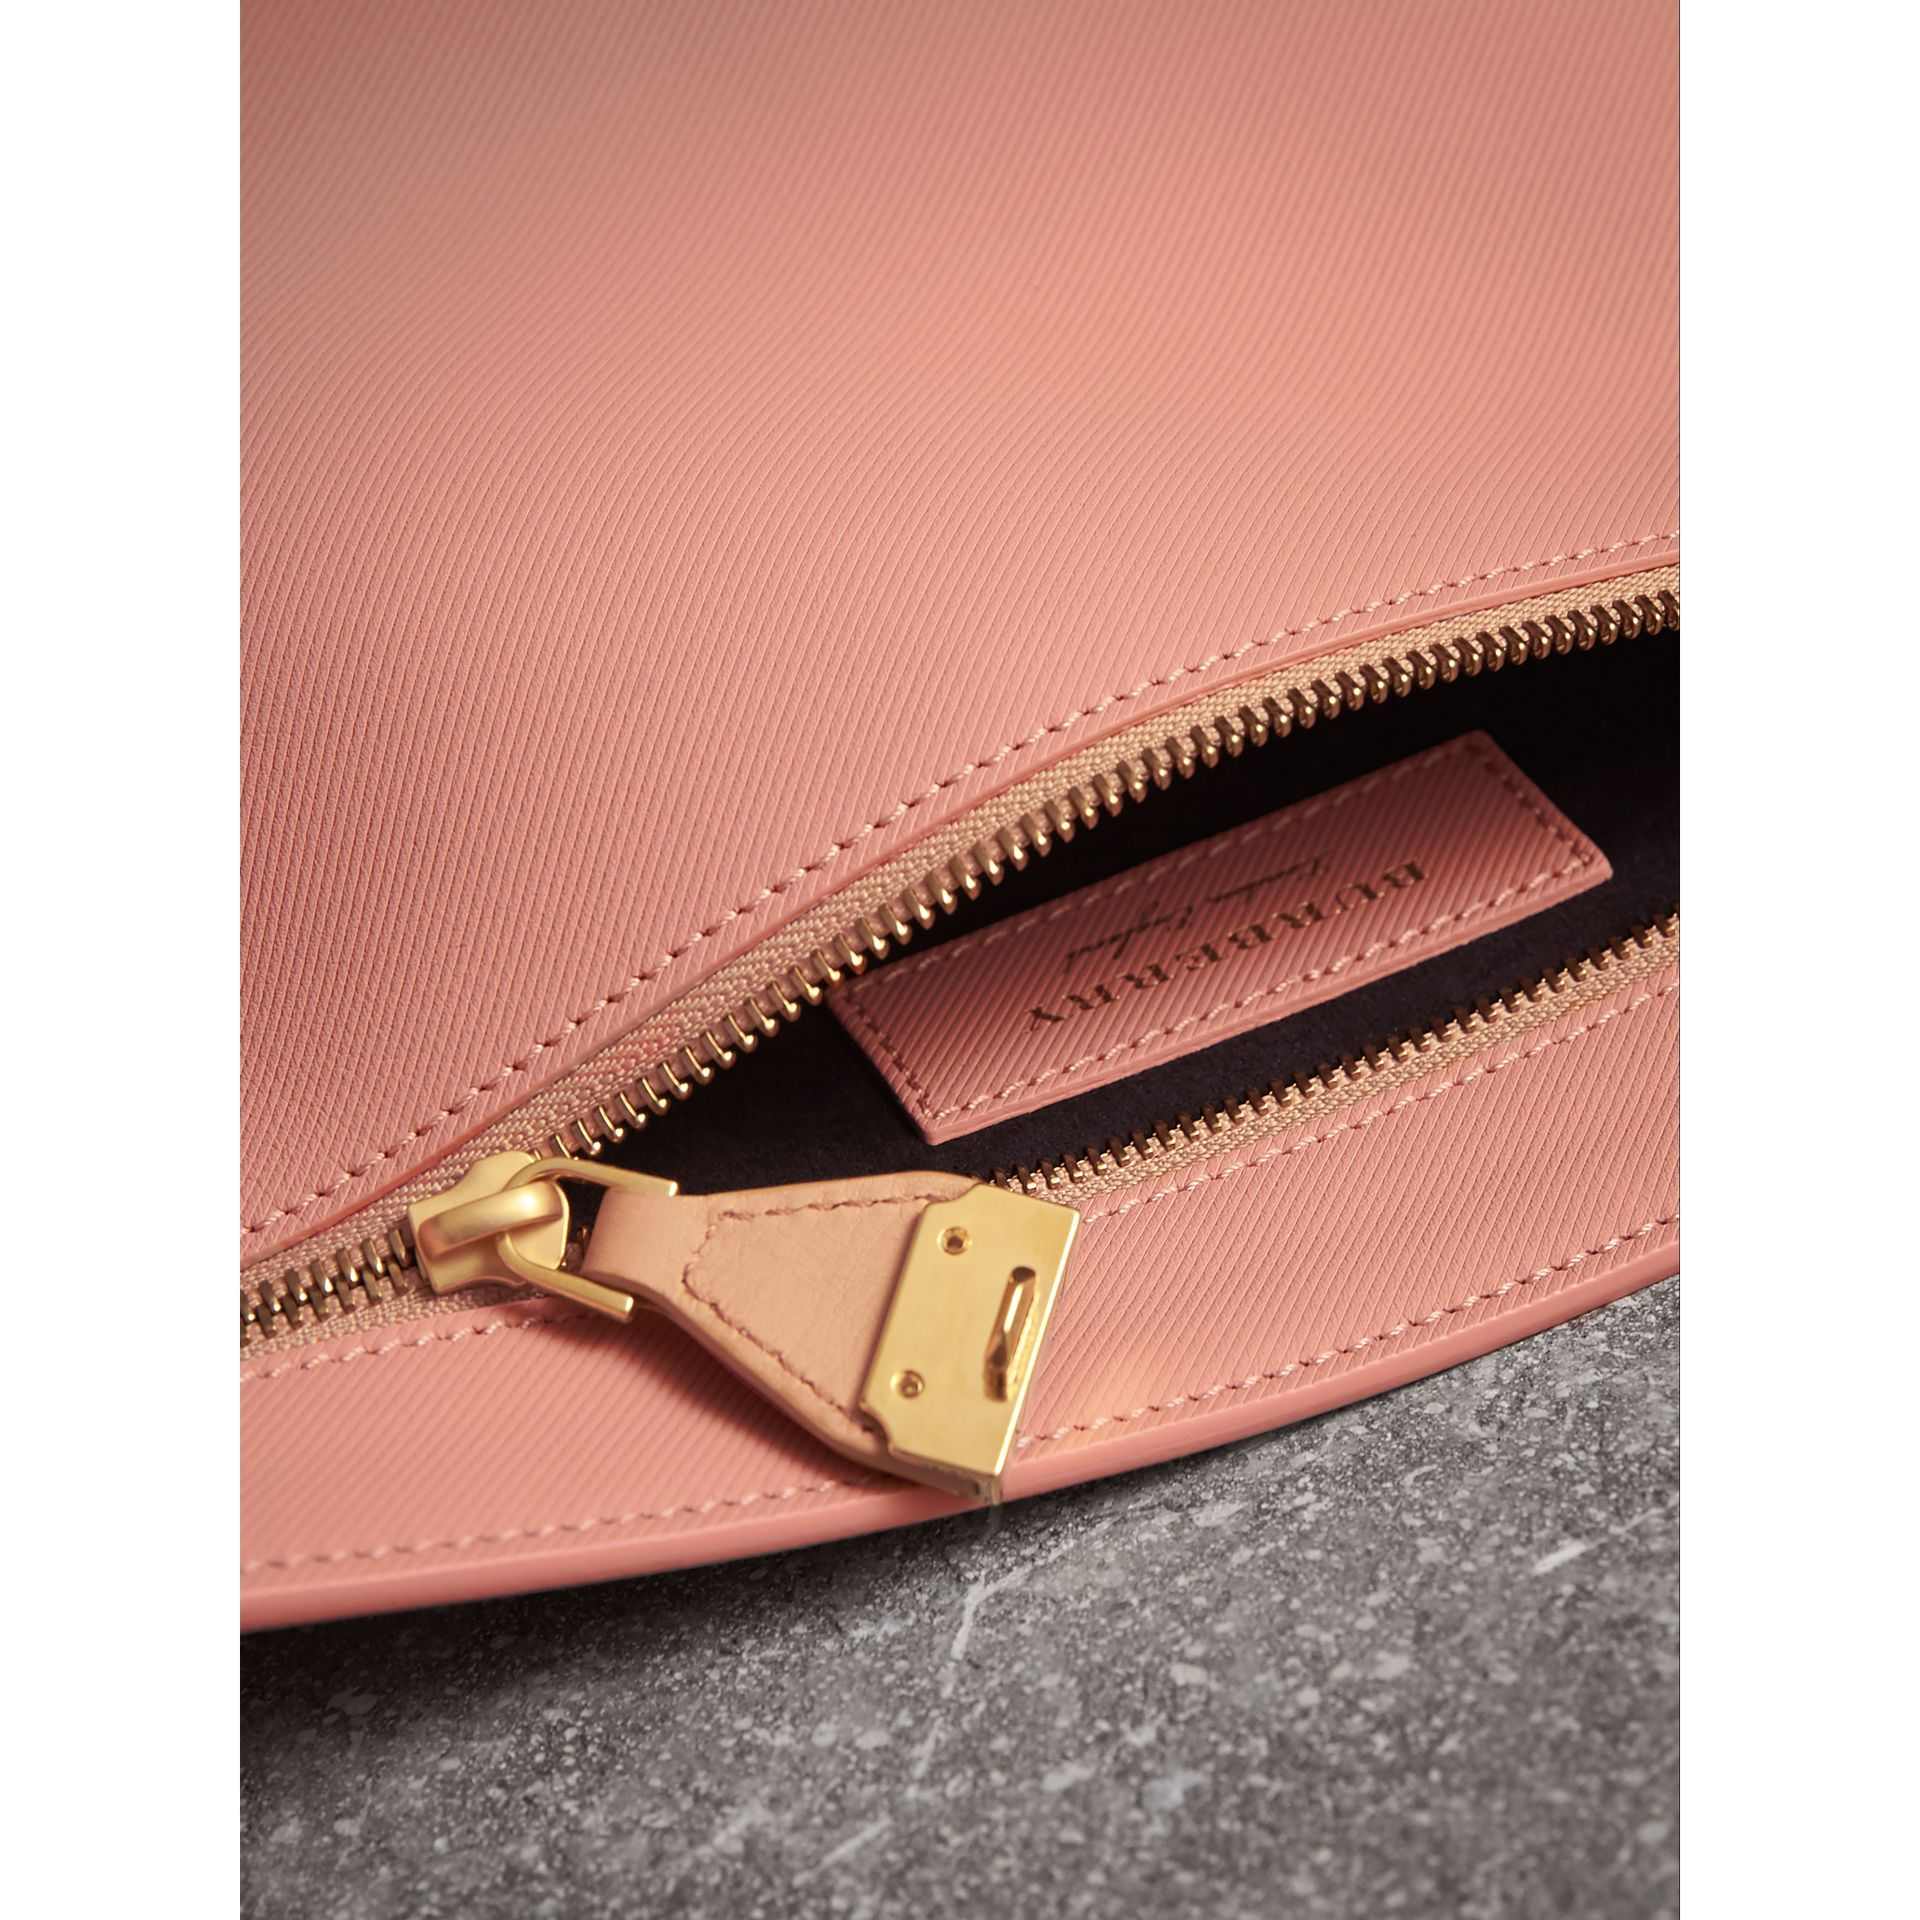 Two-tone Trench Leather Wristlet Pouch in Ash Rose/pale Clementine - Women | Burberry - gallery image 5